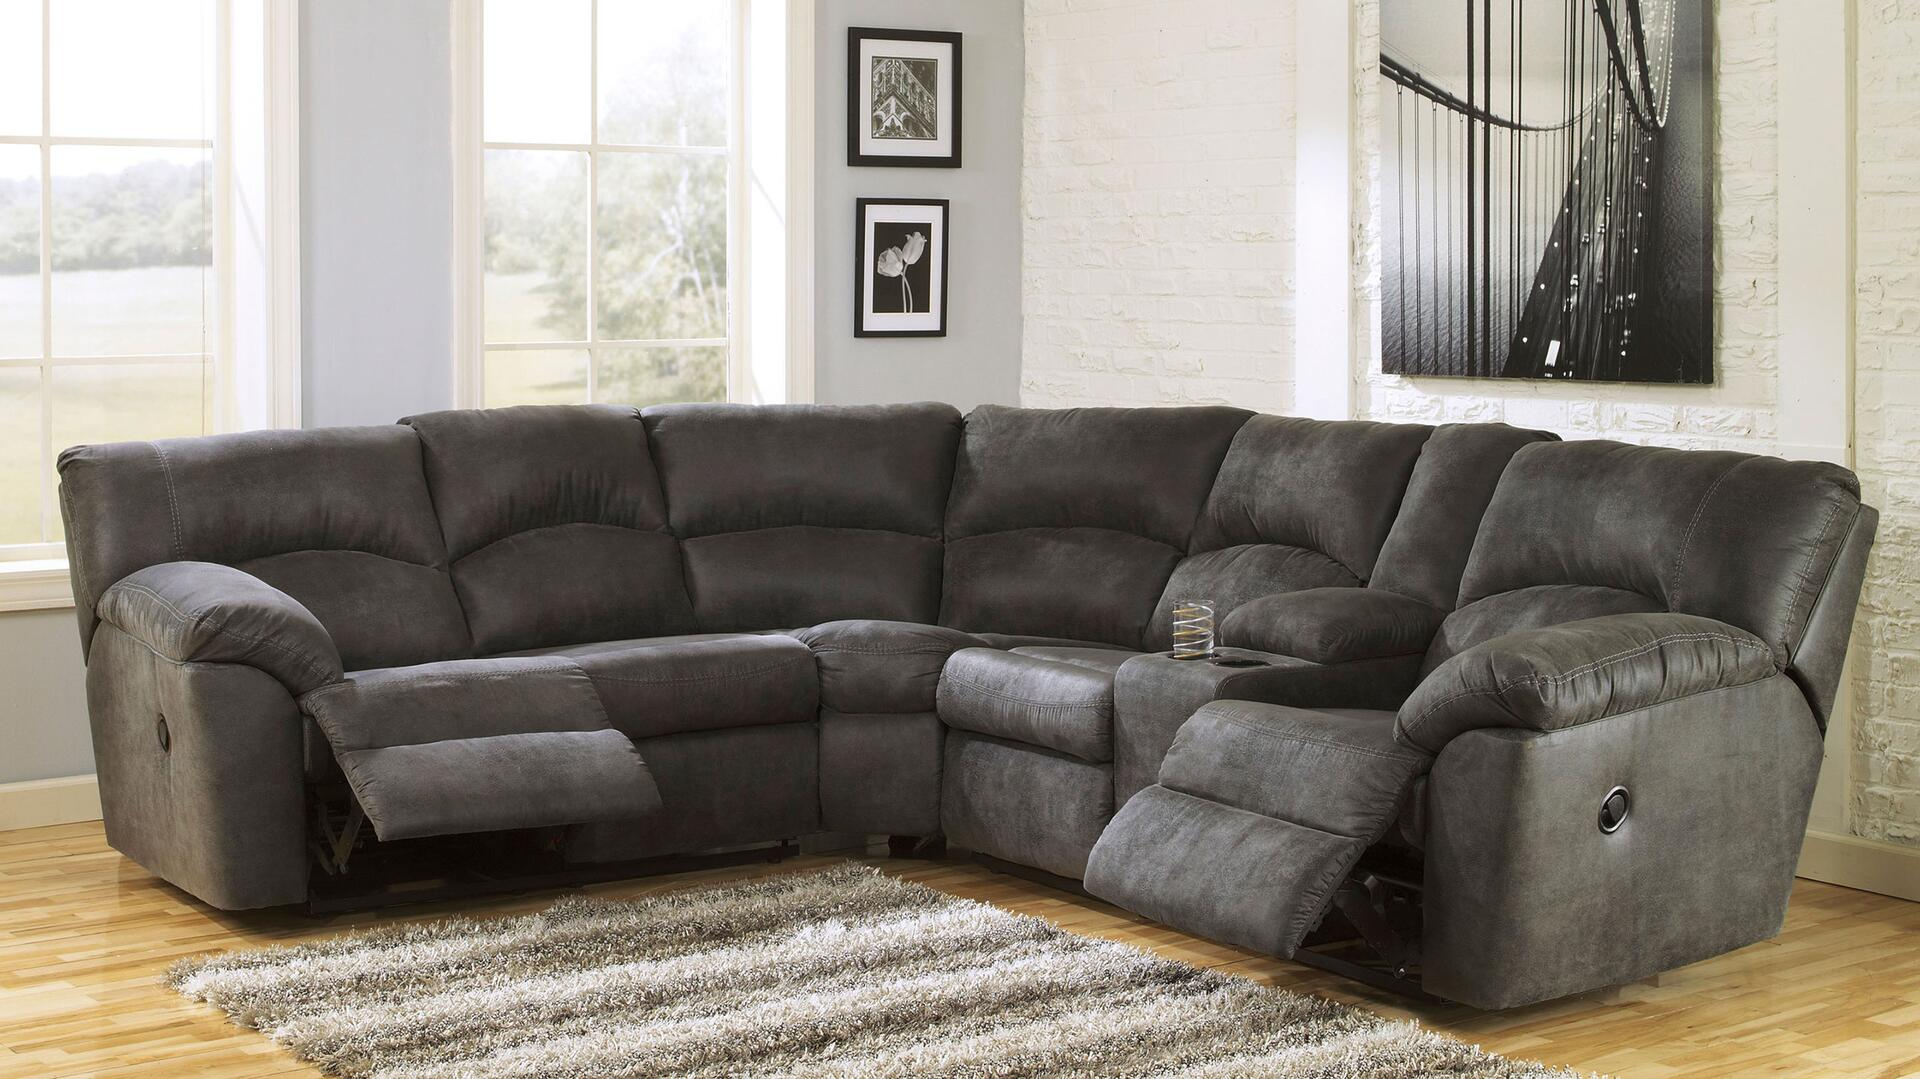 Signature Design by Ashley Tambo Series Reclining Faux